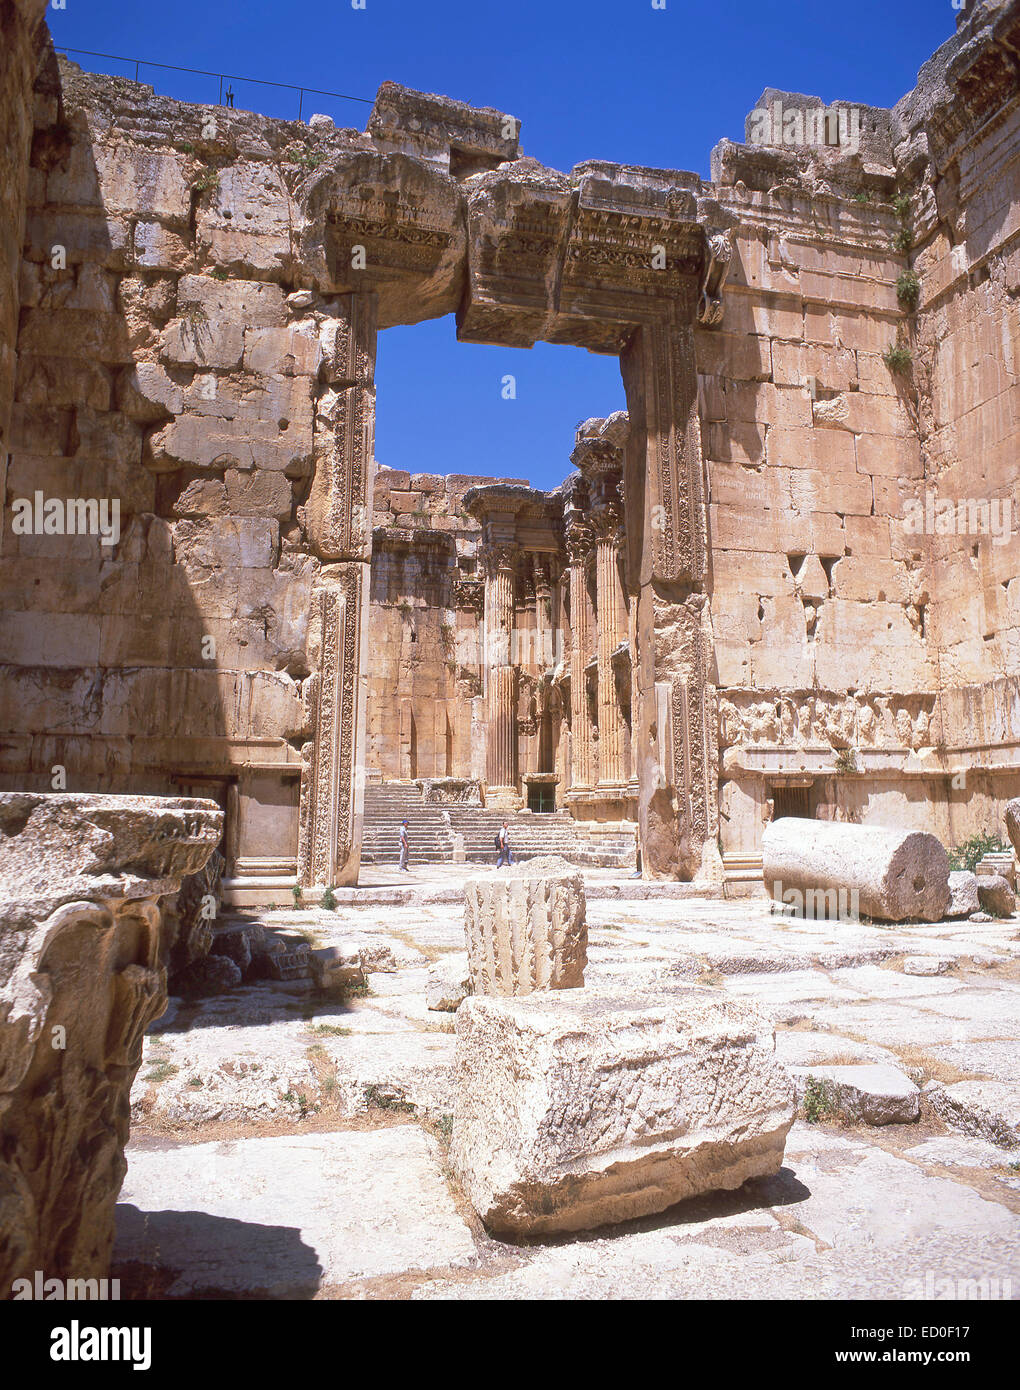 Entrée au Temple de Bacchus, Baalbeck, Bekaa, République du Liban Photo Stock